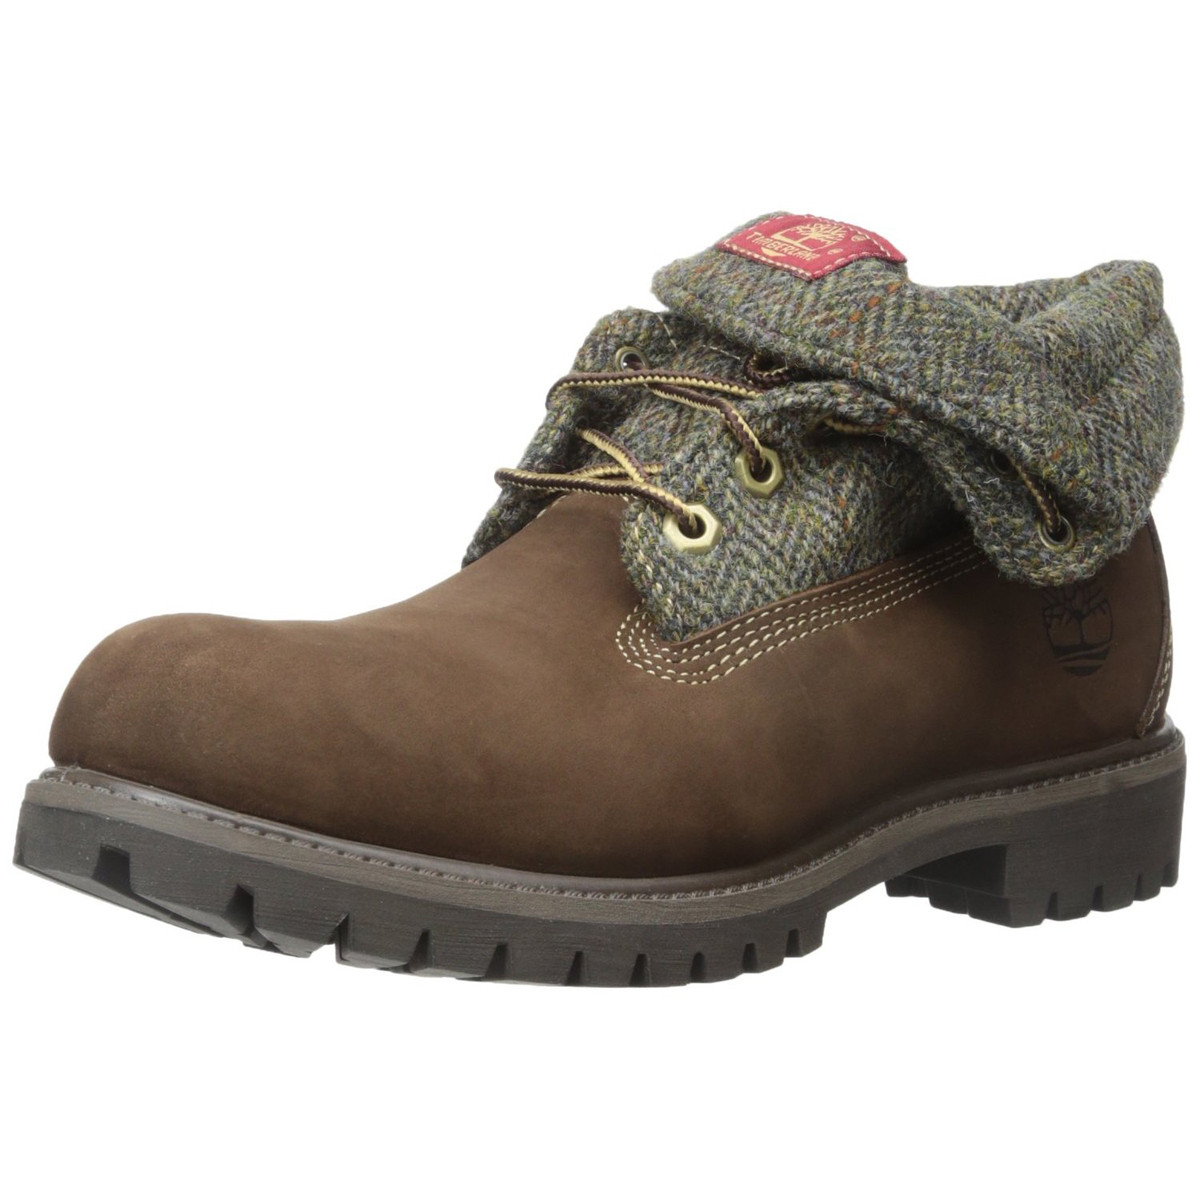 Homme Ff TIMBERLAND MARRON pas Roll Top Chaussures cher kXZiPu